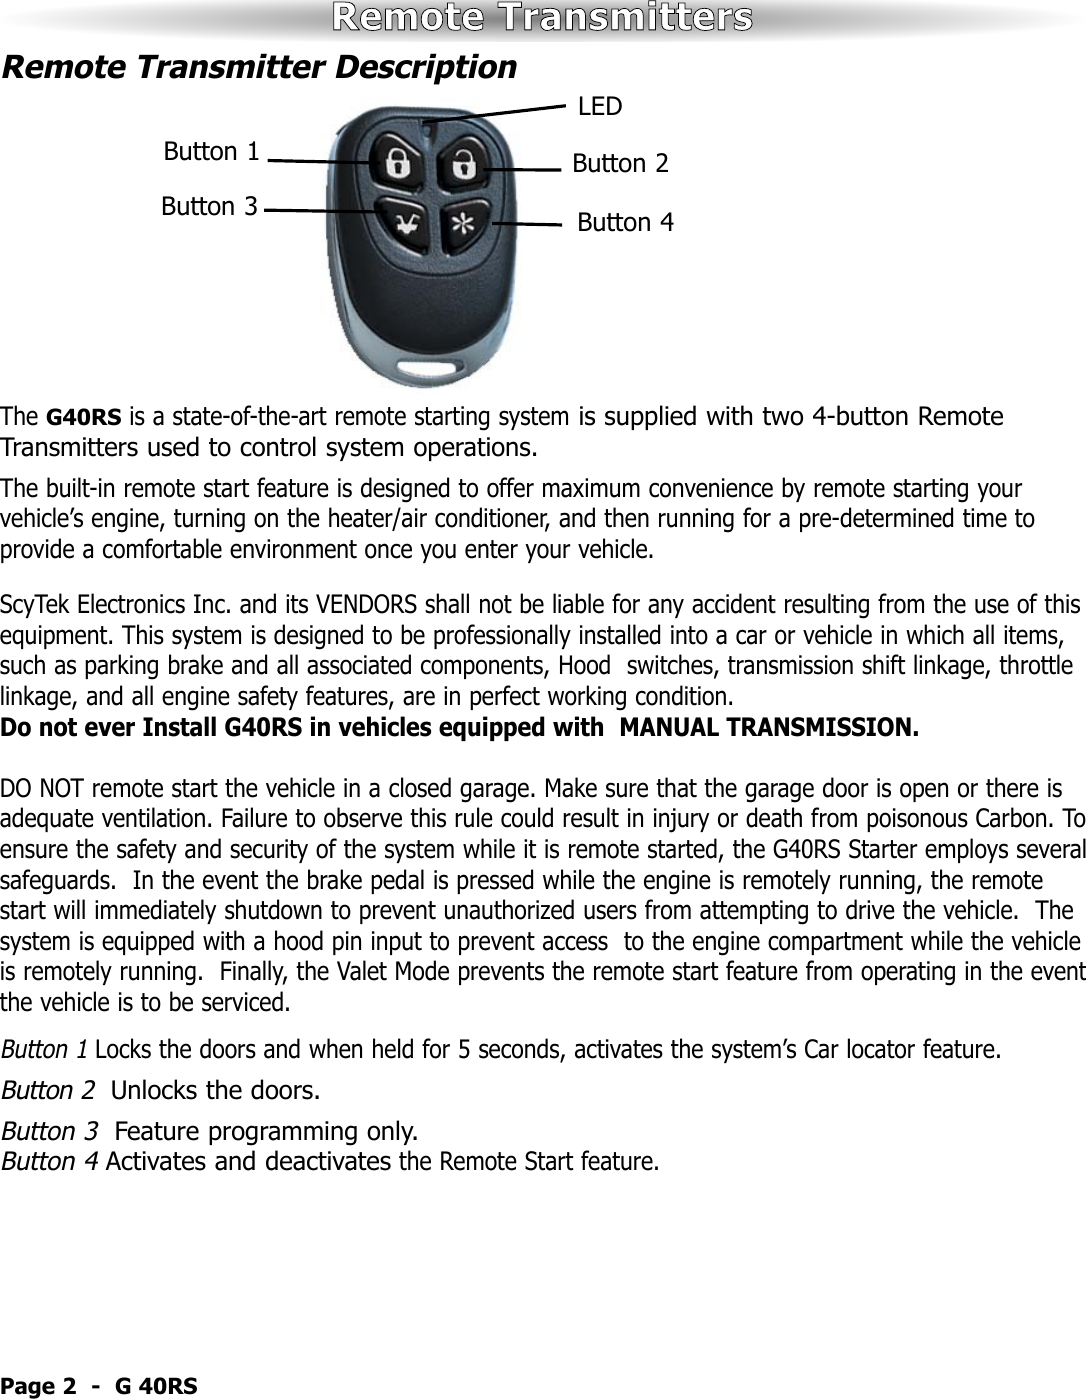 Scytek Electronic Galaxy G40rs Users Manual 10 9 09 Door Actuator Wiring Page 3 Of 12